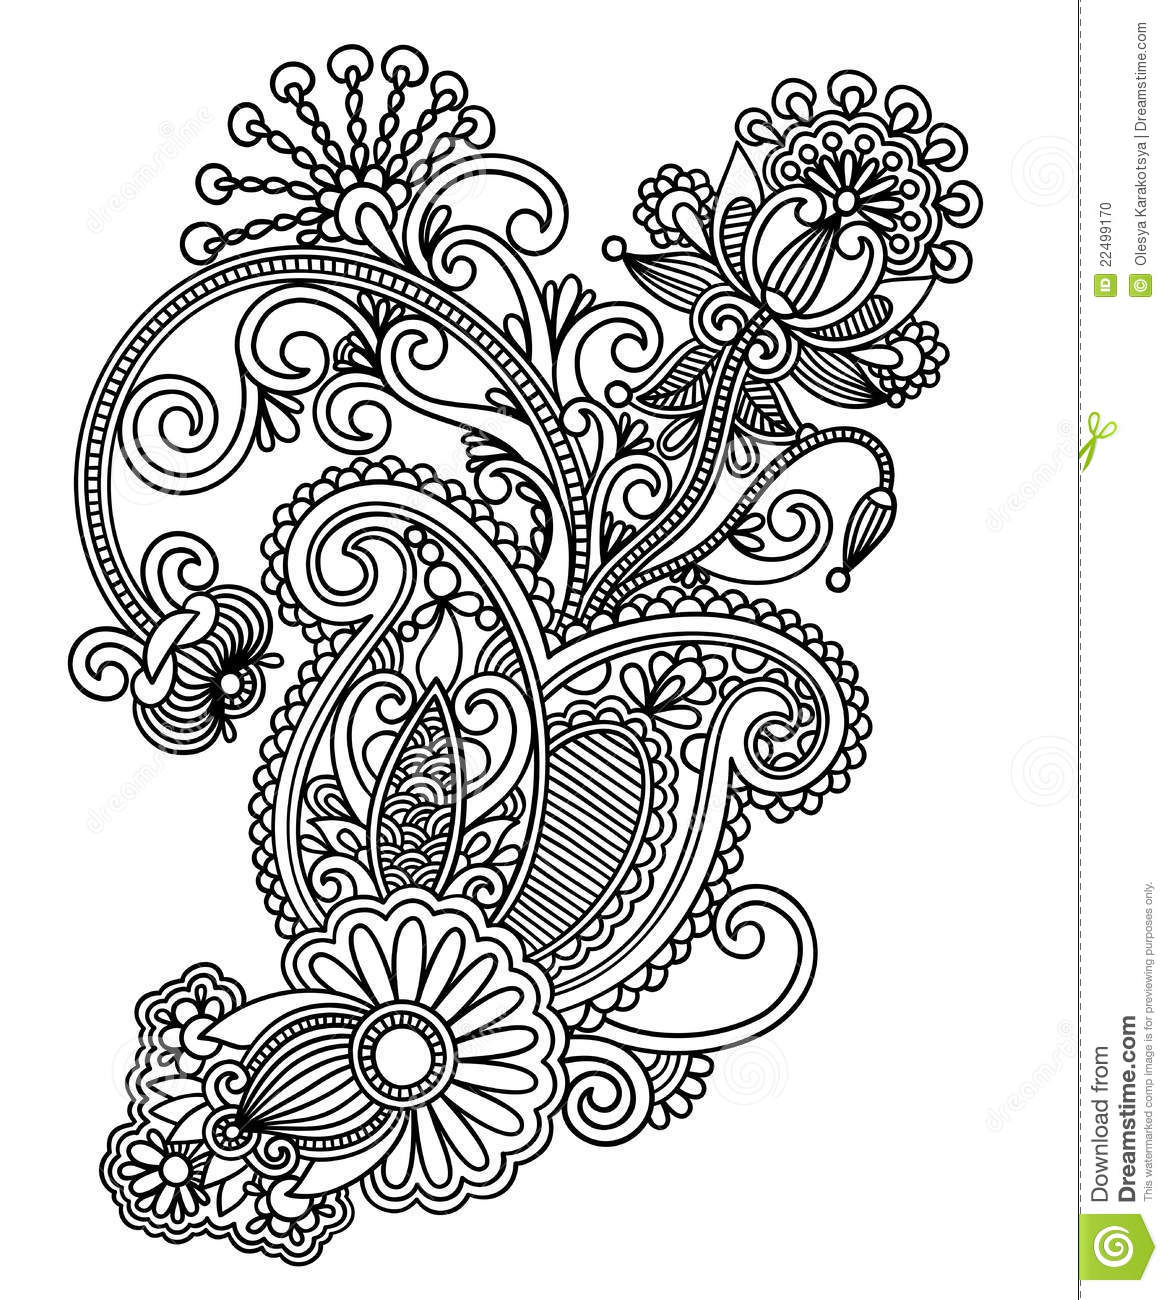 Line Art Poster Design : Line art ornate flower design stock vector illustration